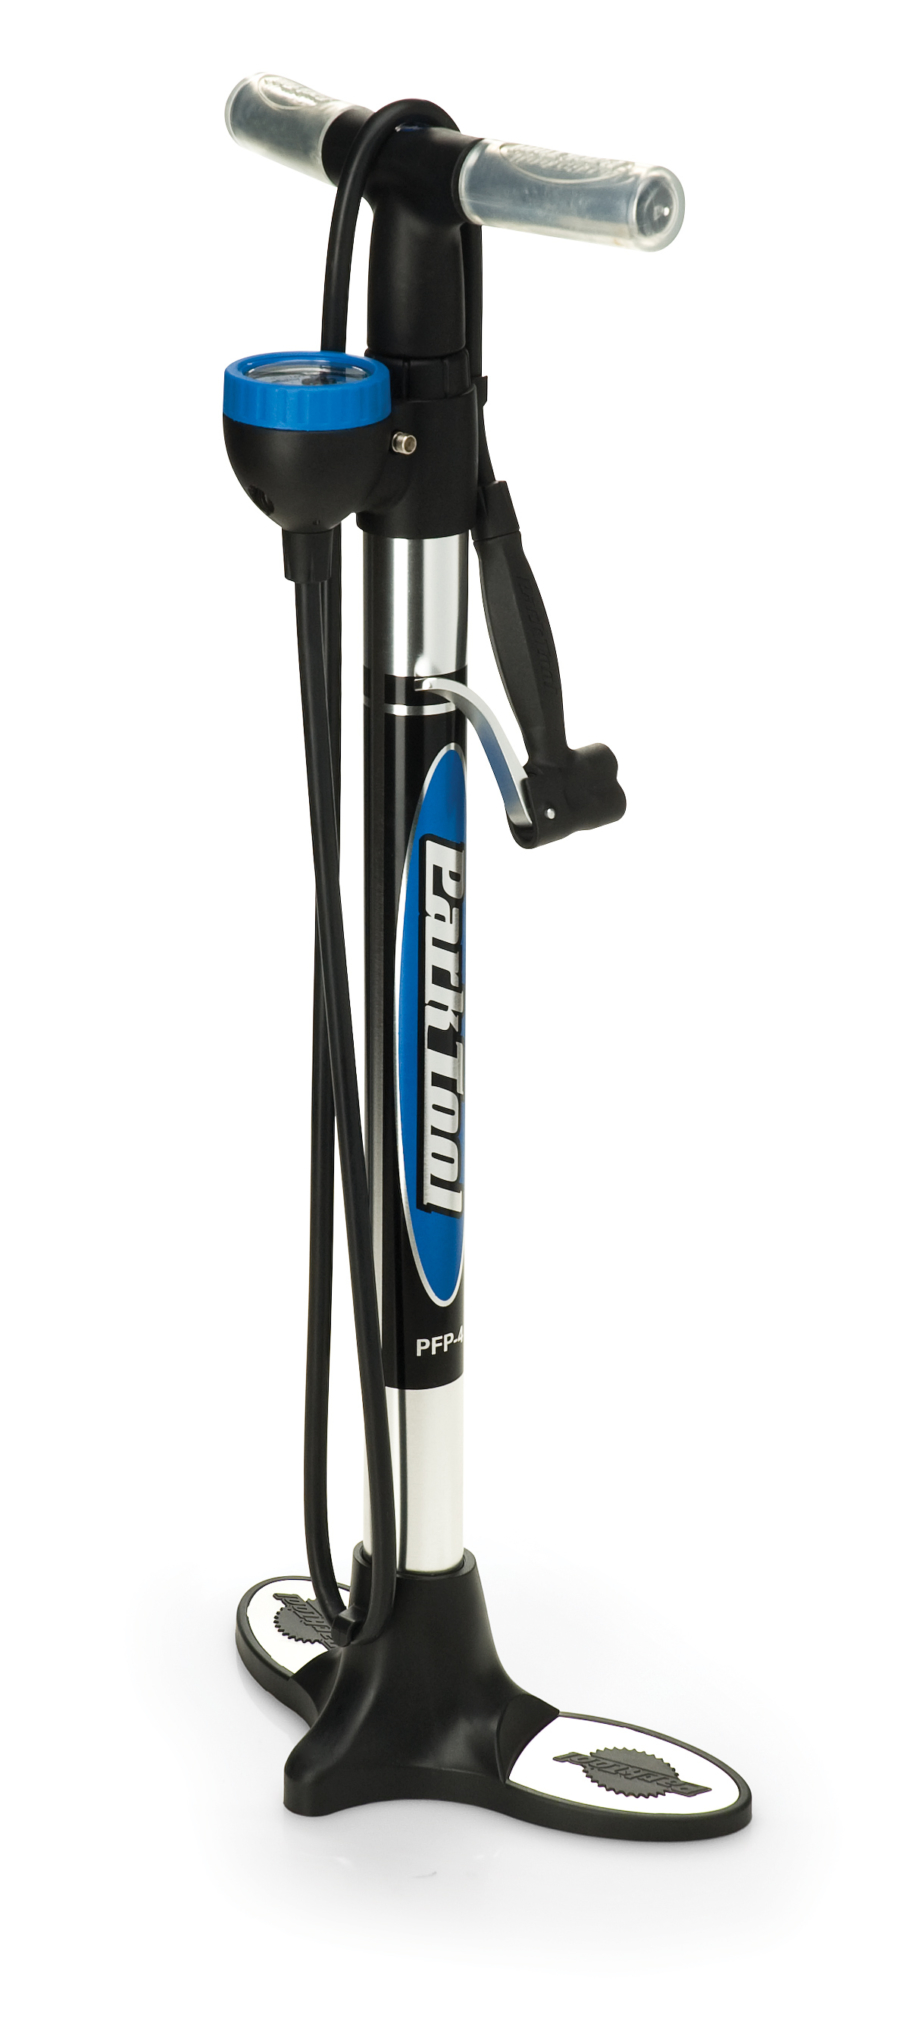 The Park Tool PFP-4 Professional Mechanic Floor Pump, enlarged